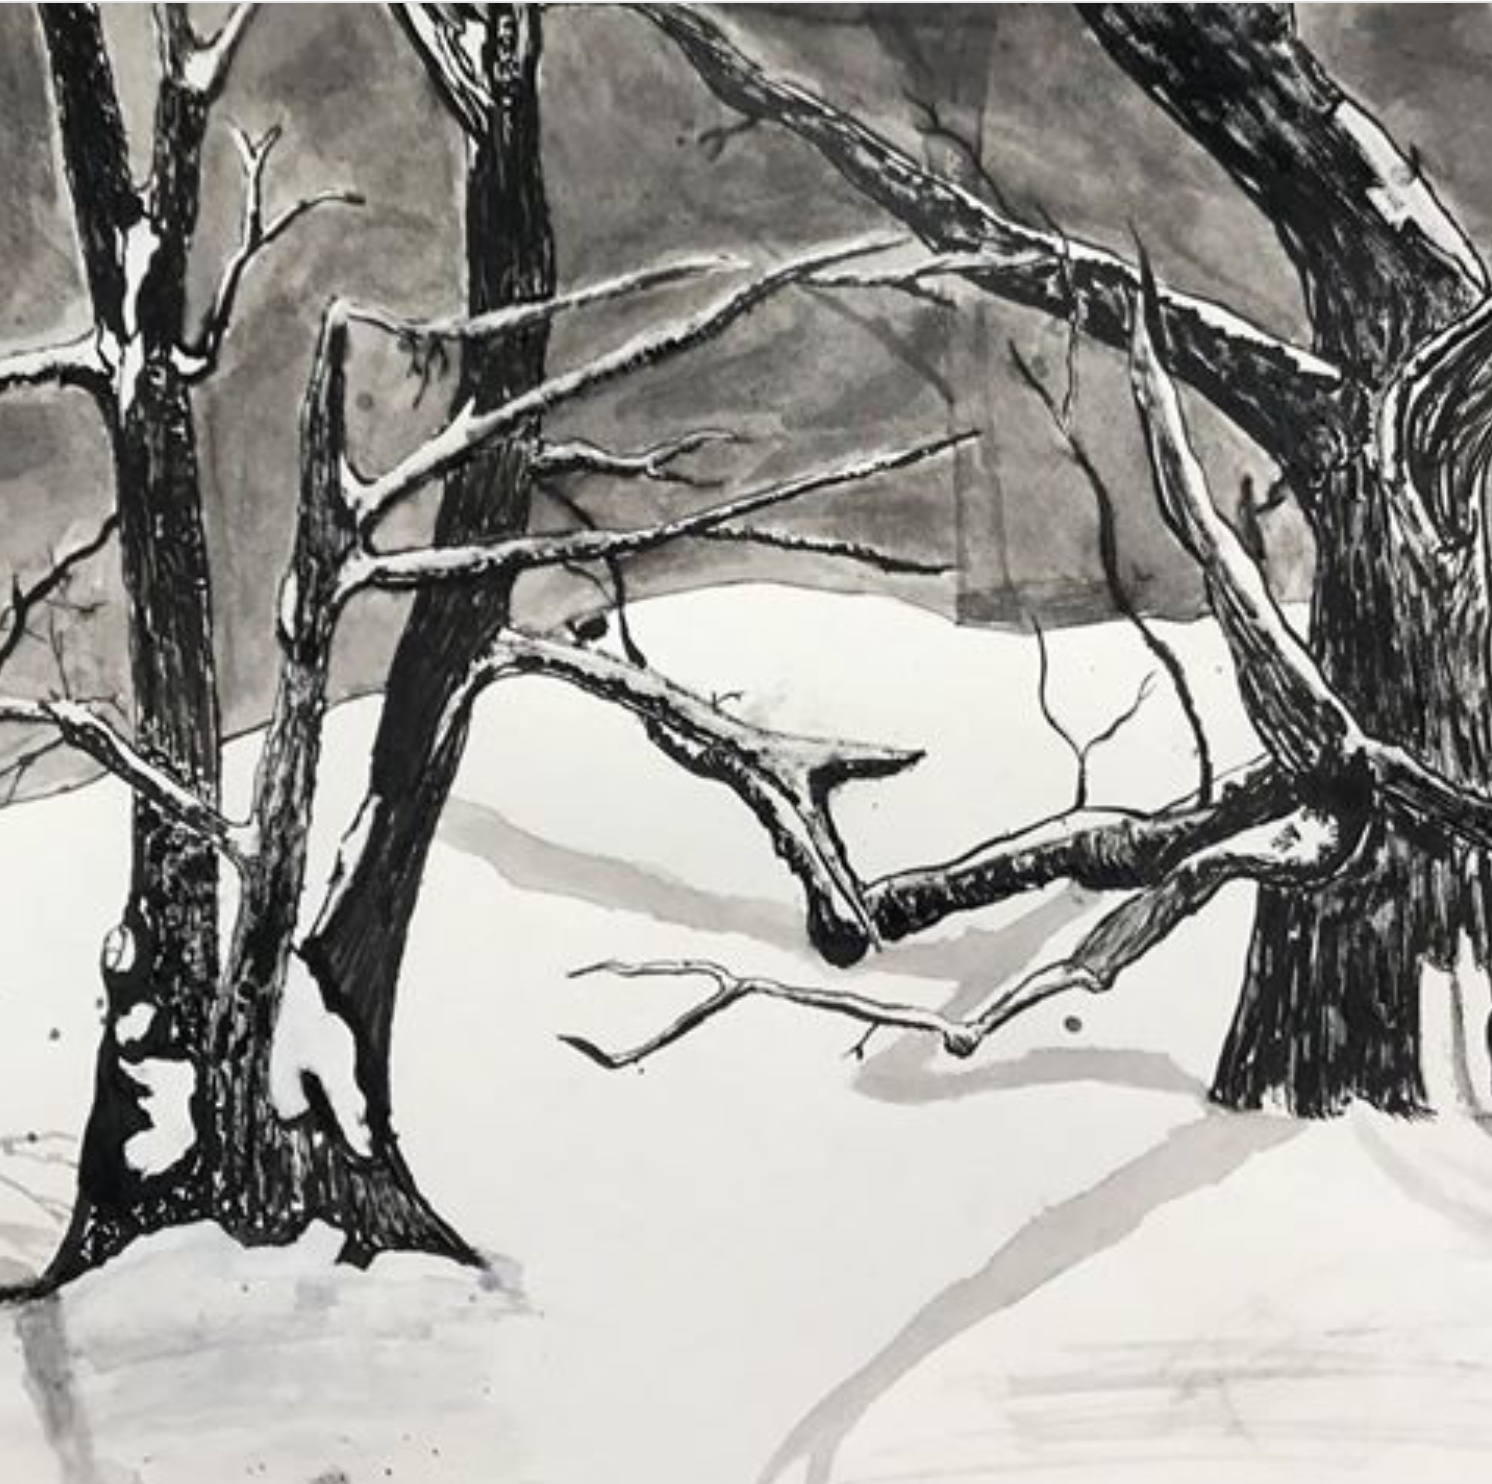 painting created by high school student of bare trees with snow and shadows